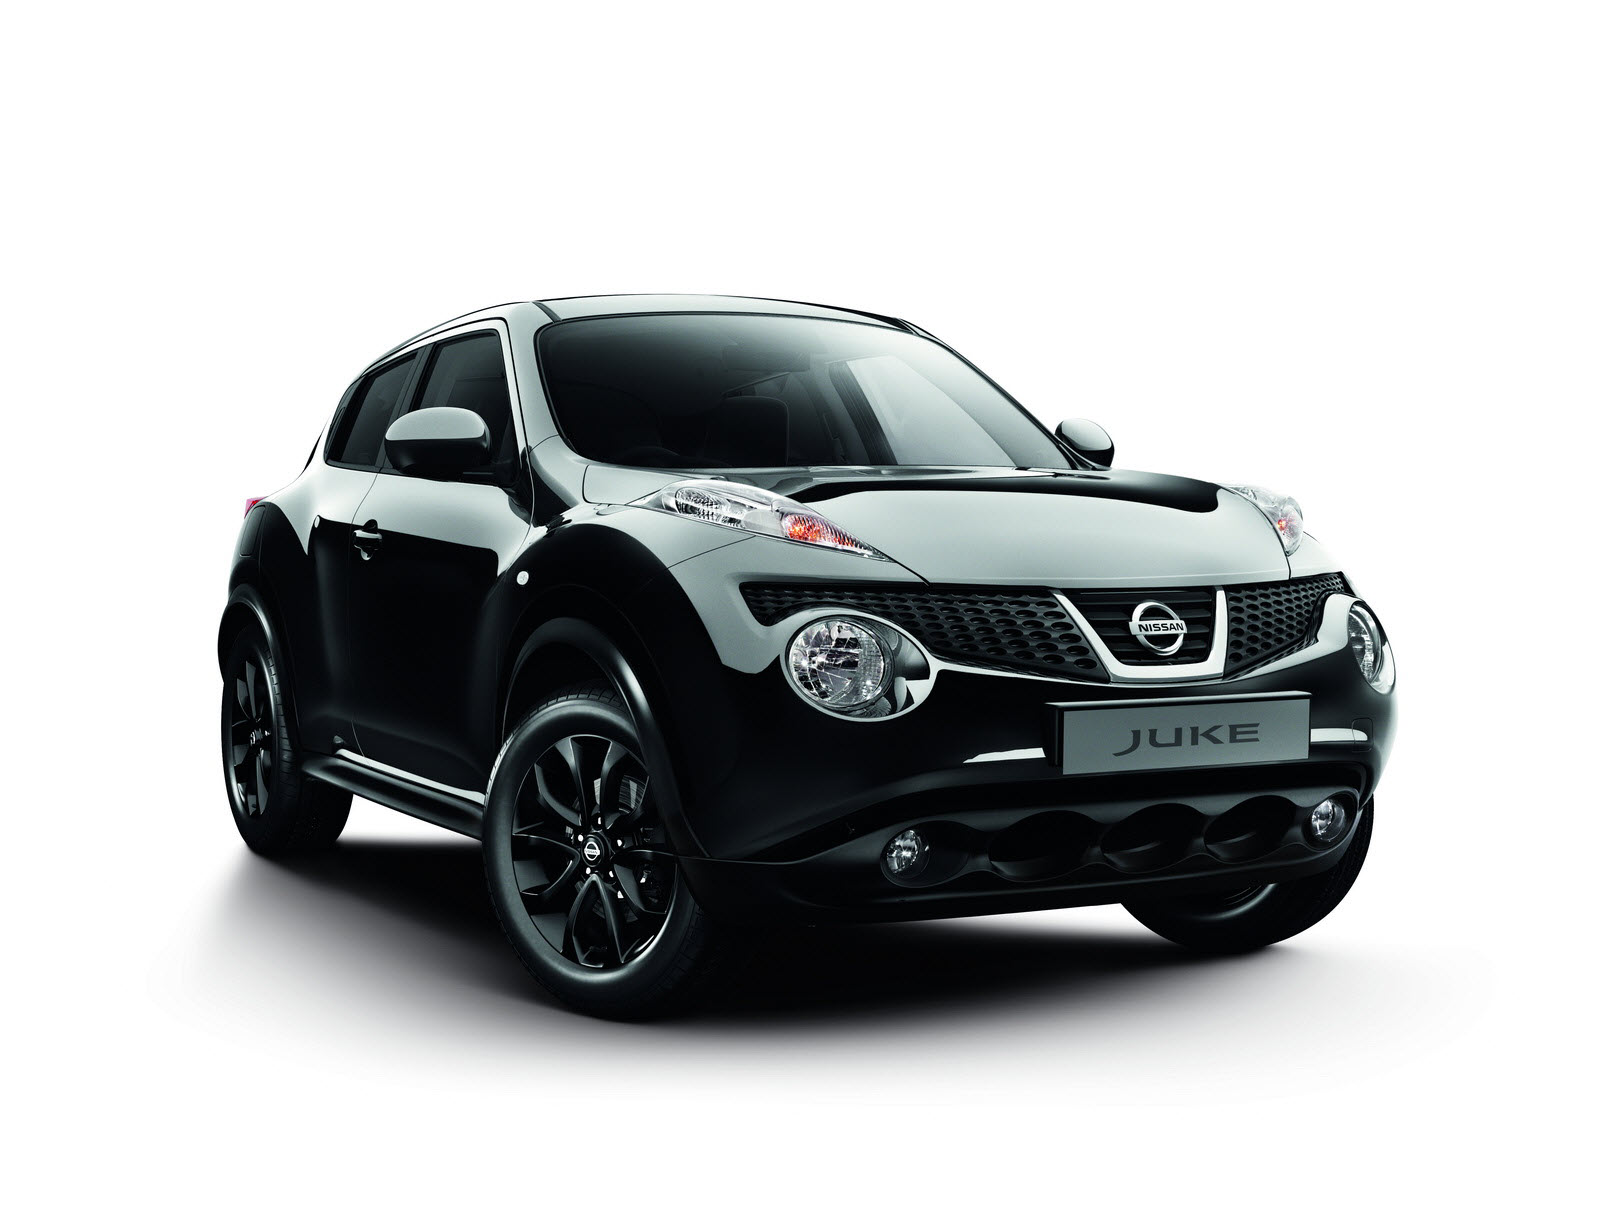 Nissan launched juke kuro limited edition auto car for Nissan juke automatik